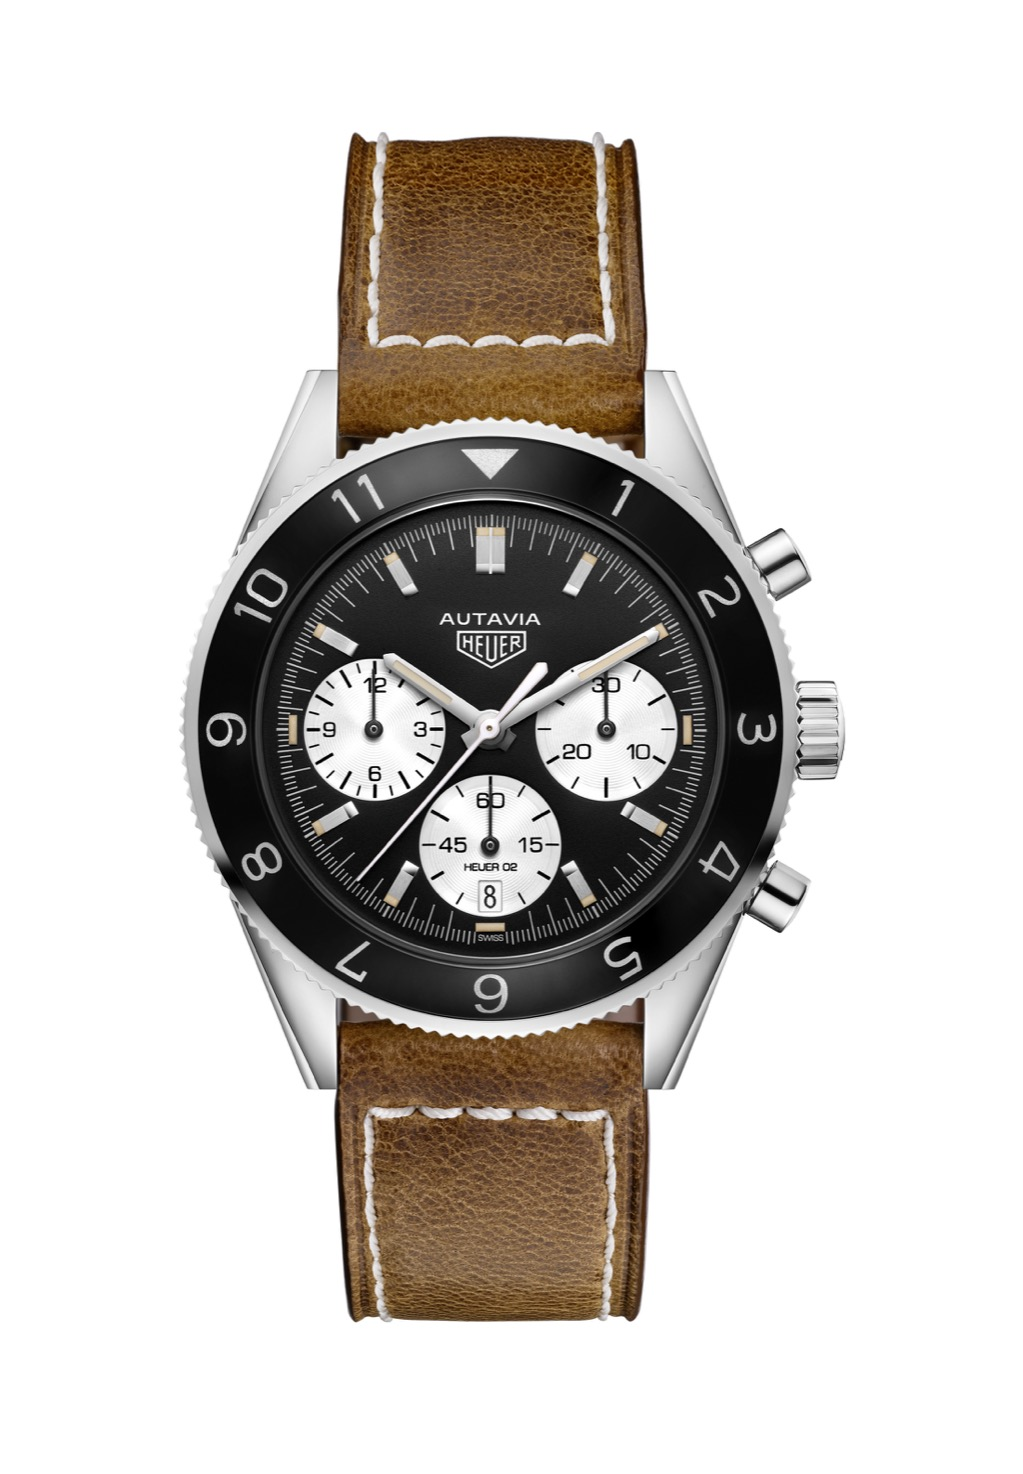 The TAG Heuer Autavia is a cool vintage watch